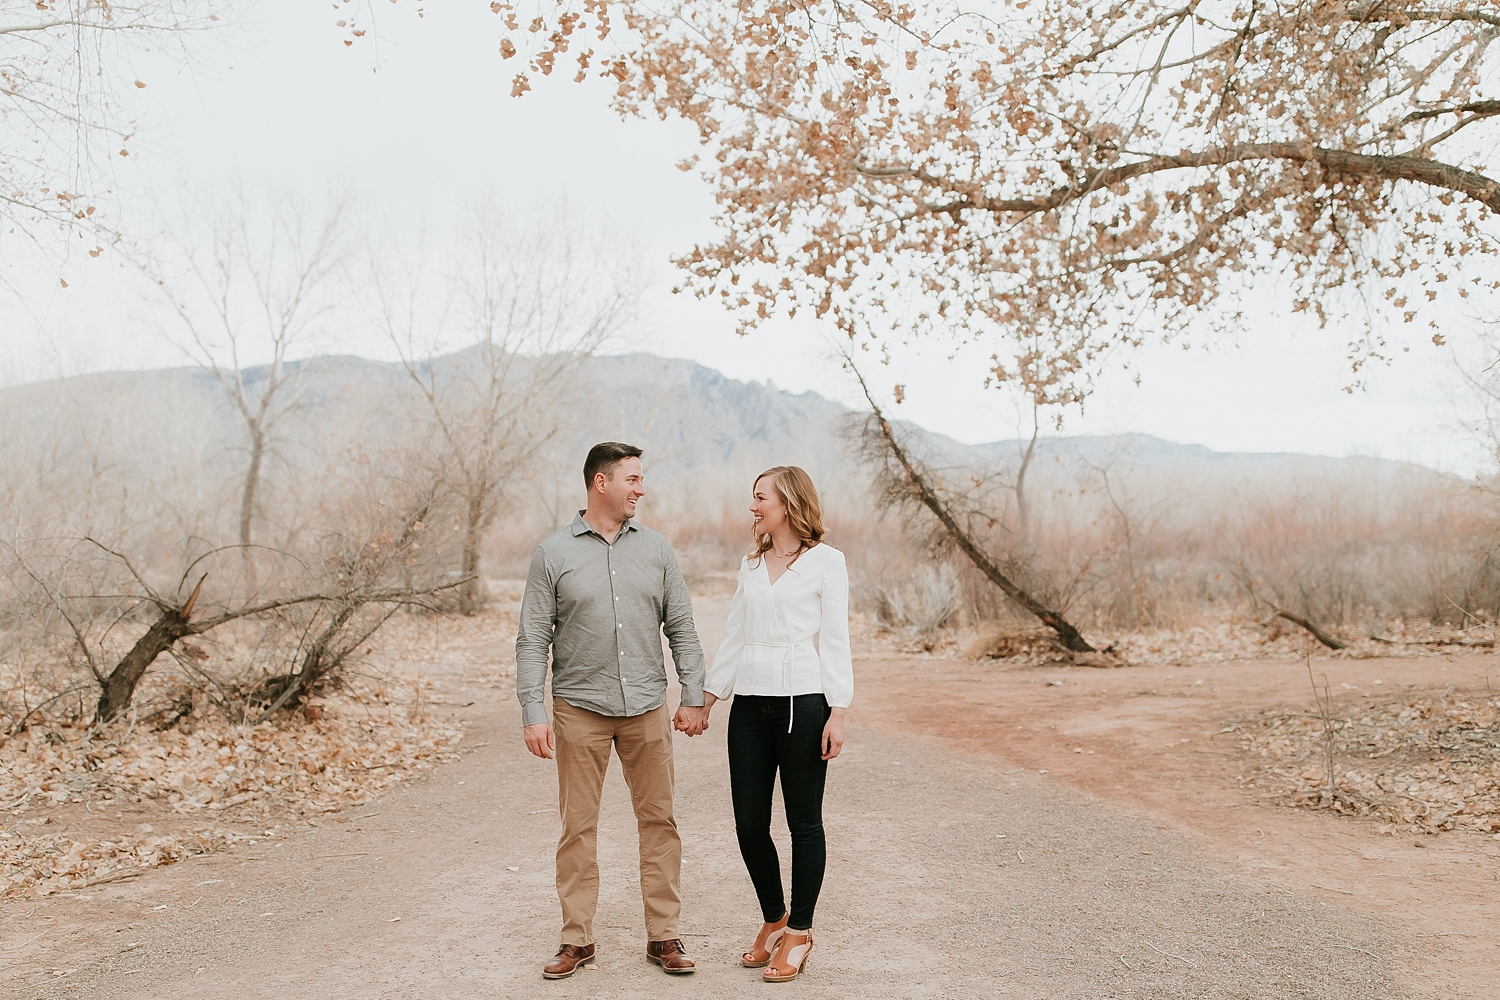 Alicia+lucia+photography+-+albuquerque+wedding+photographer+-+santa+fe+wedding+photography+-+new+mexico+wedding+photographer+-+new+mexico+engagement+-+albuquerque+engagement+-+spring+new+mexico+engagement+-+bosque+engagement_0001.jpg